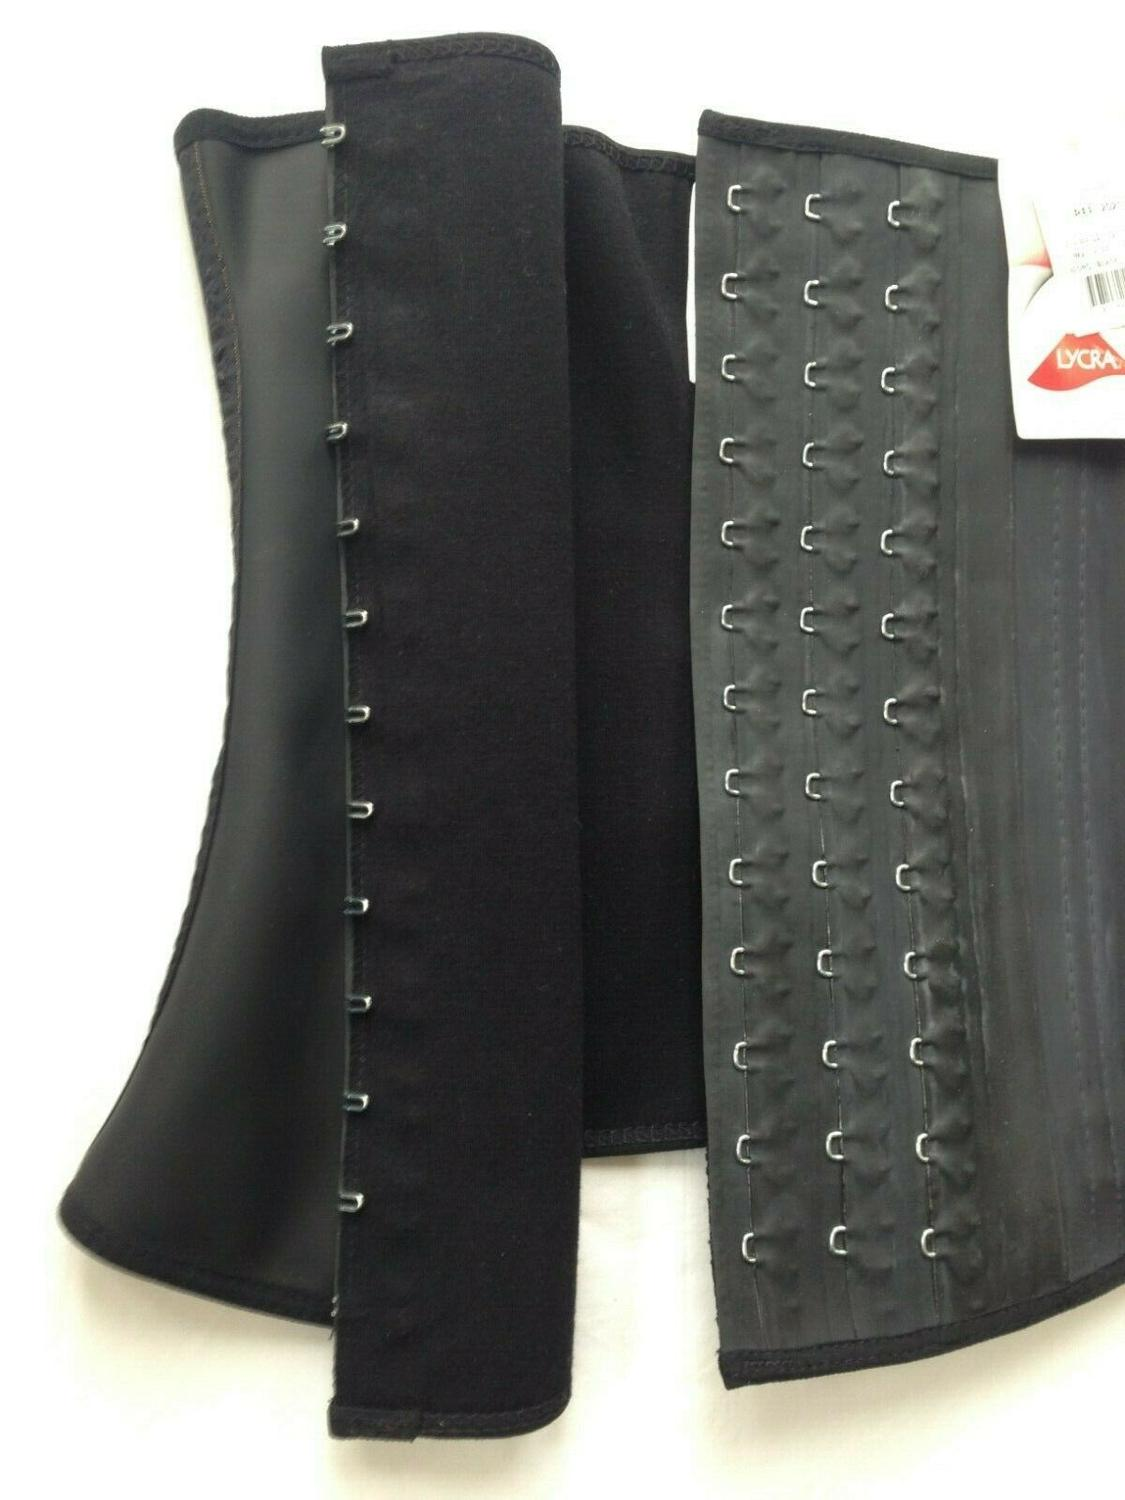 2019 chaud!! Gros latex taille formation corsets ann chery taille cincher chaud shaper taille formateur corset - 6